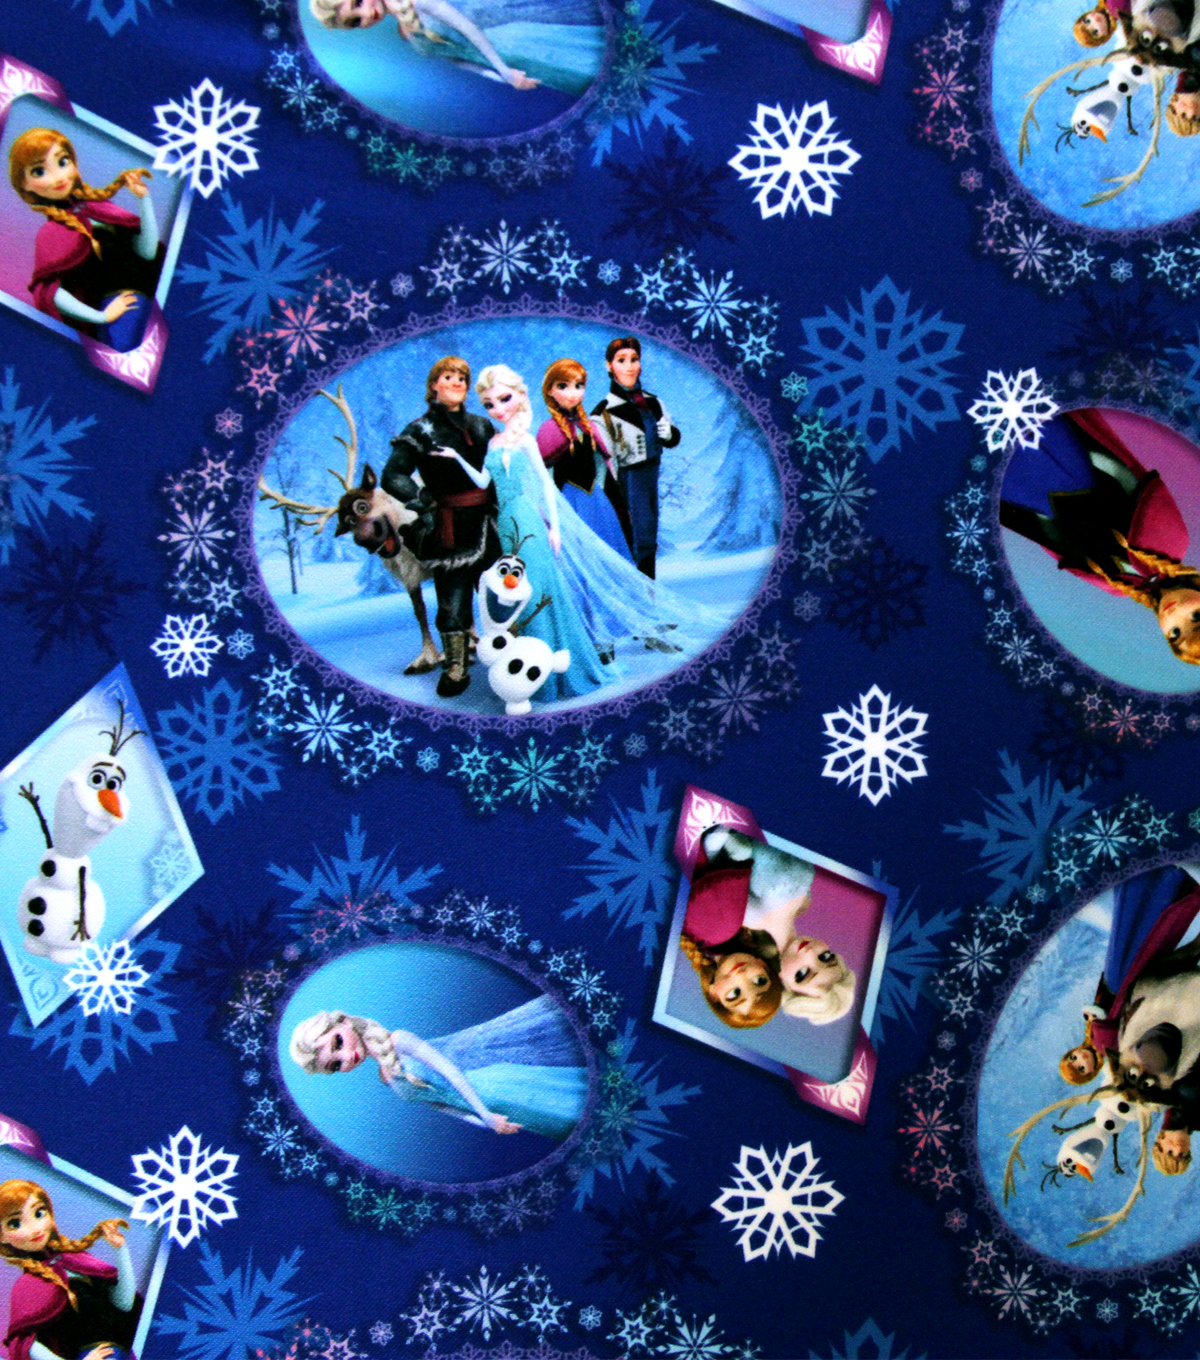 Frozen Scenes Fabric from Joann Fabric and Crafts